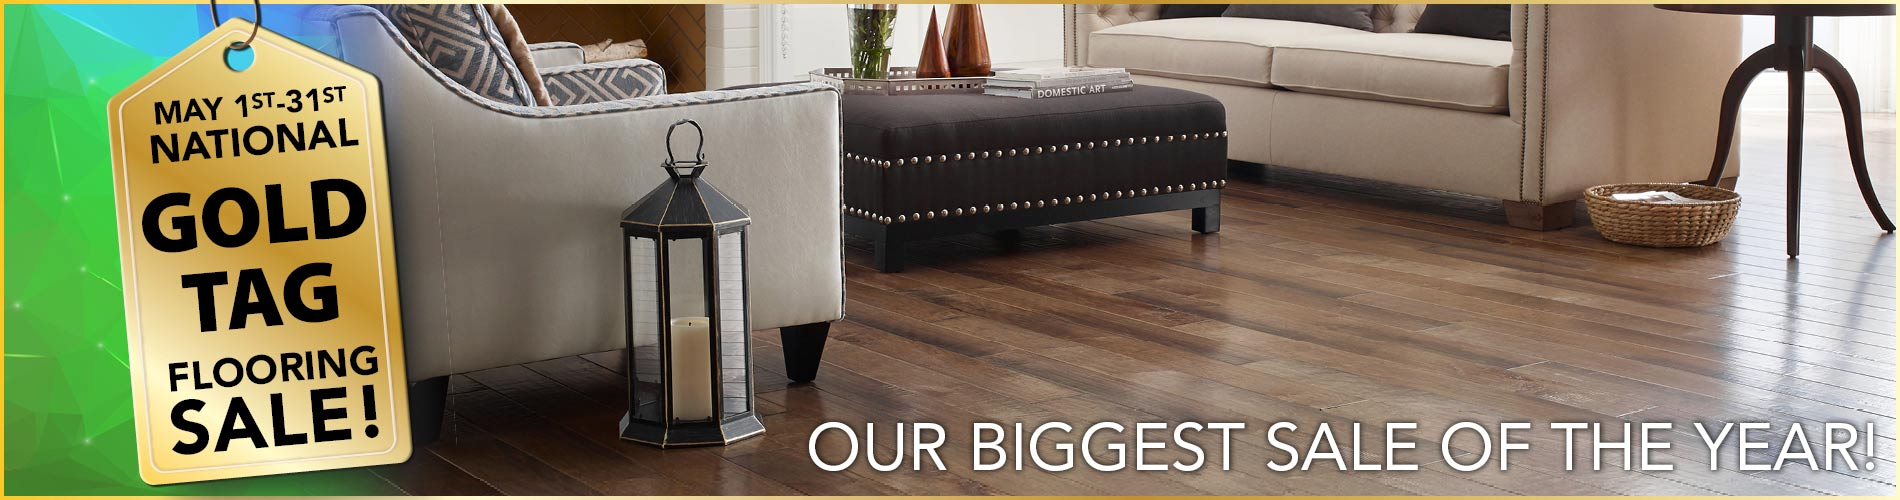 National Gold Tag Flooring Sale is our biggest sale of the year